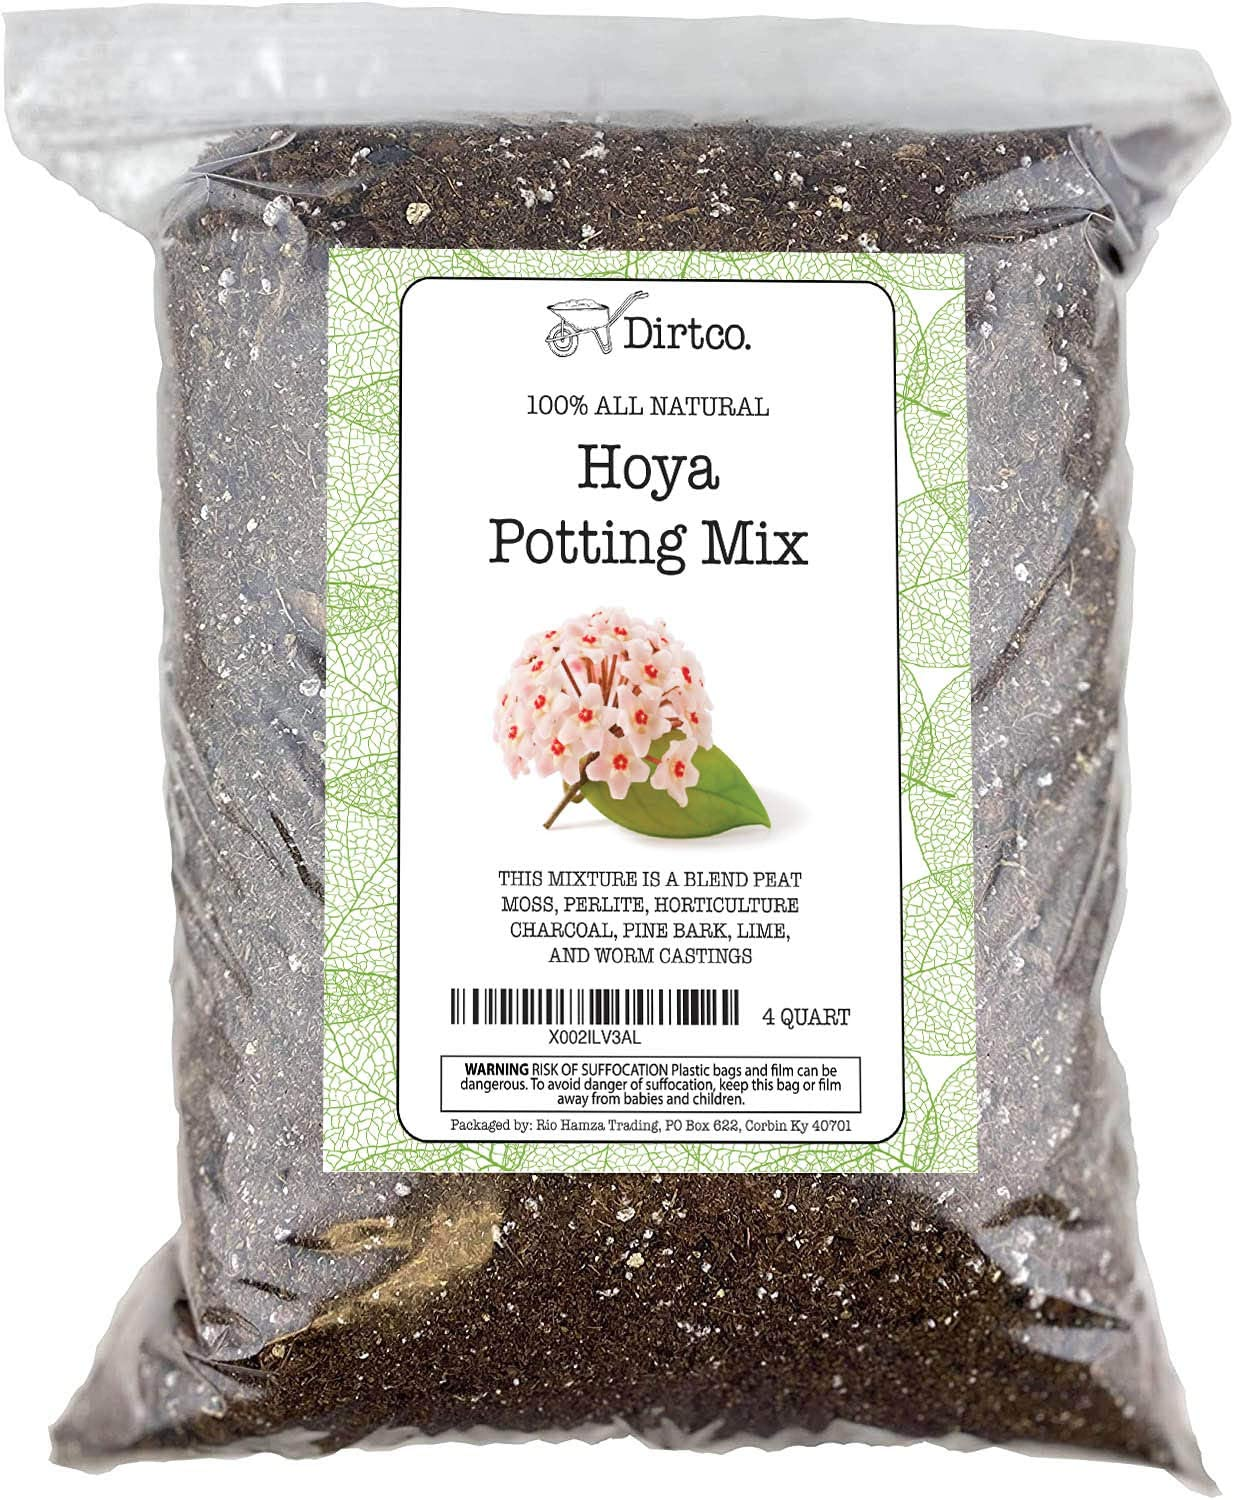 Amazon Com Hoya Potting Mix Potting Soil Media For Planting Or Re Potting Hoya Obovata Or India Rope Hoya All Natural Potting Soil For Planting Hoya 4qts Garden Outdoor